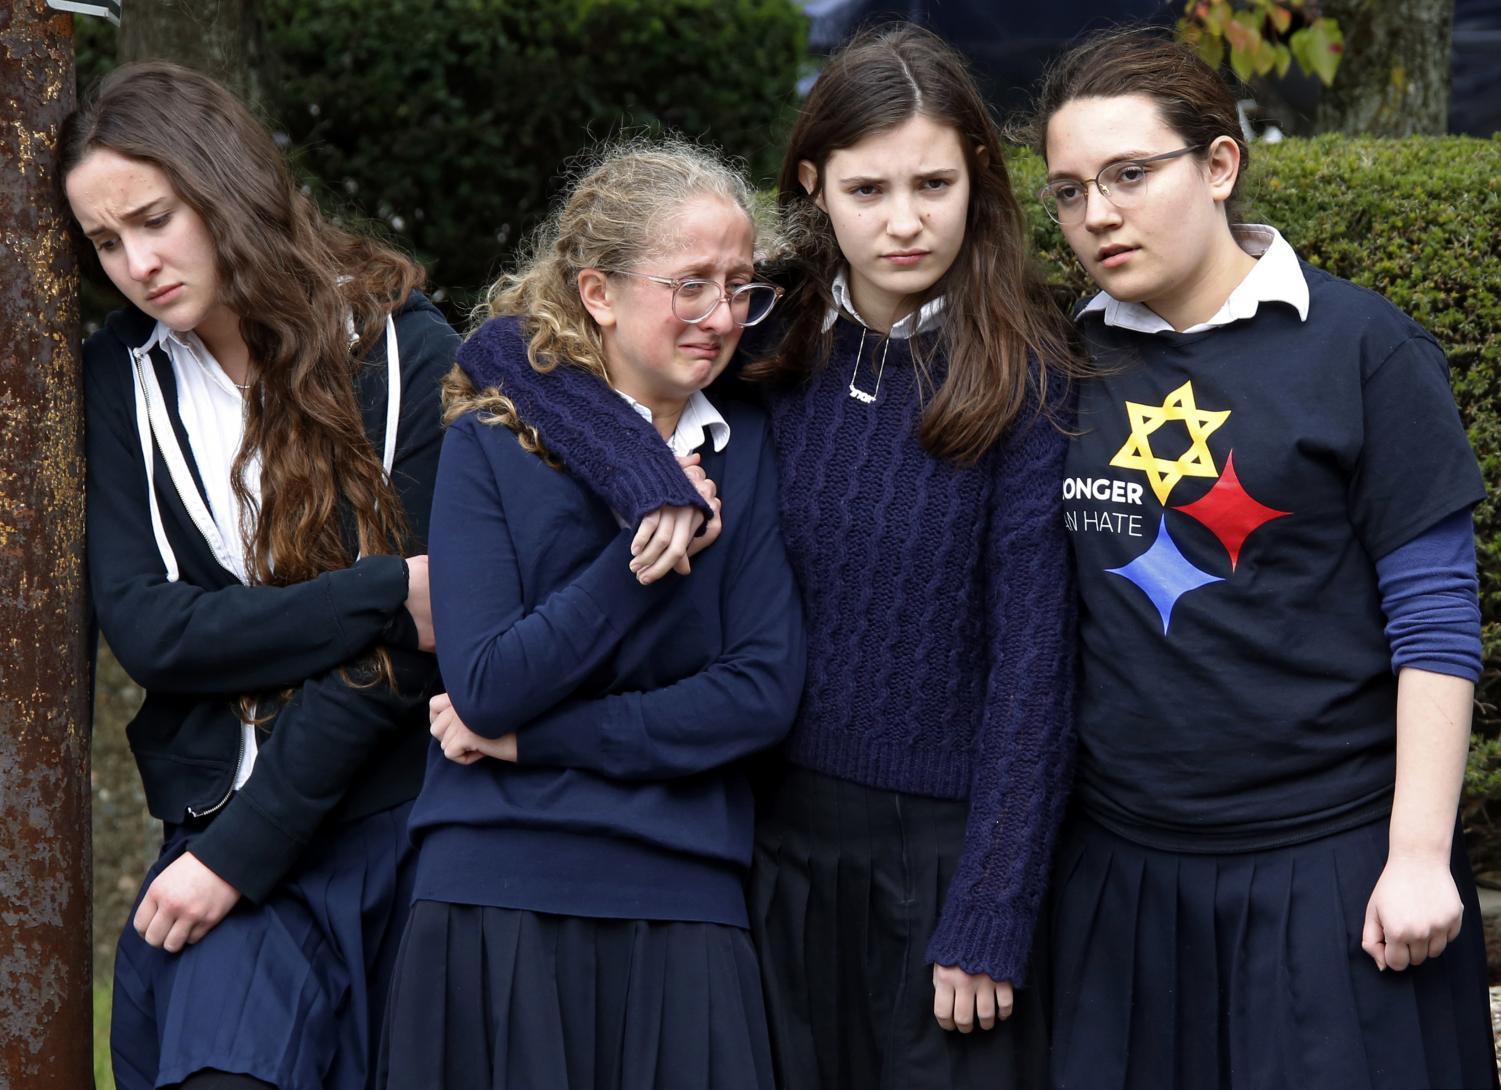 Students from a school near Squirrel Hill react following a funeral service at the Jewish Community Center on Tuesday Oct. 30, 2018.